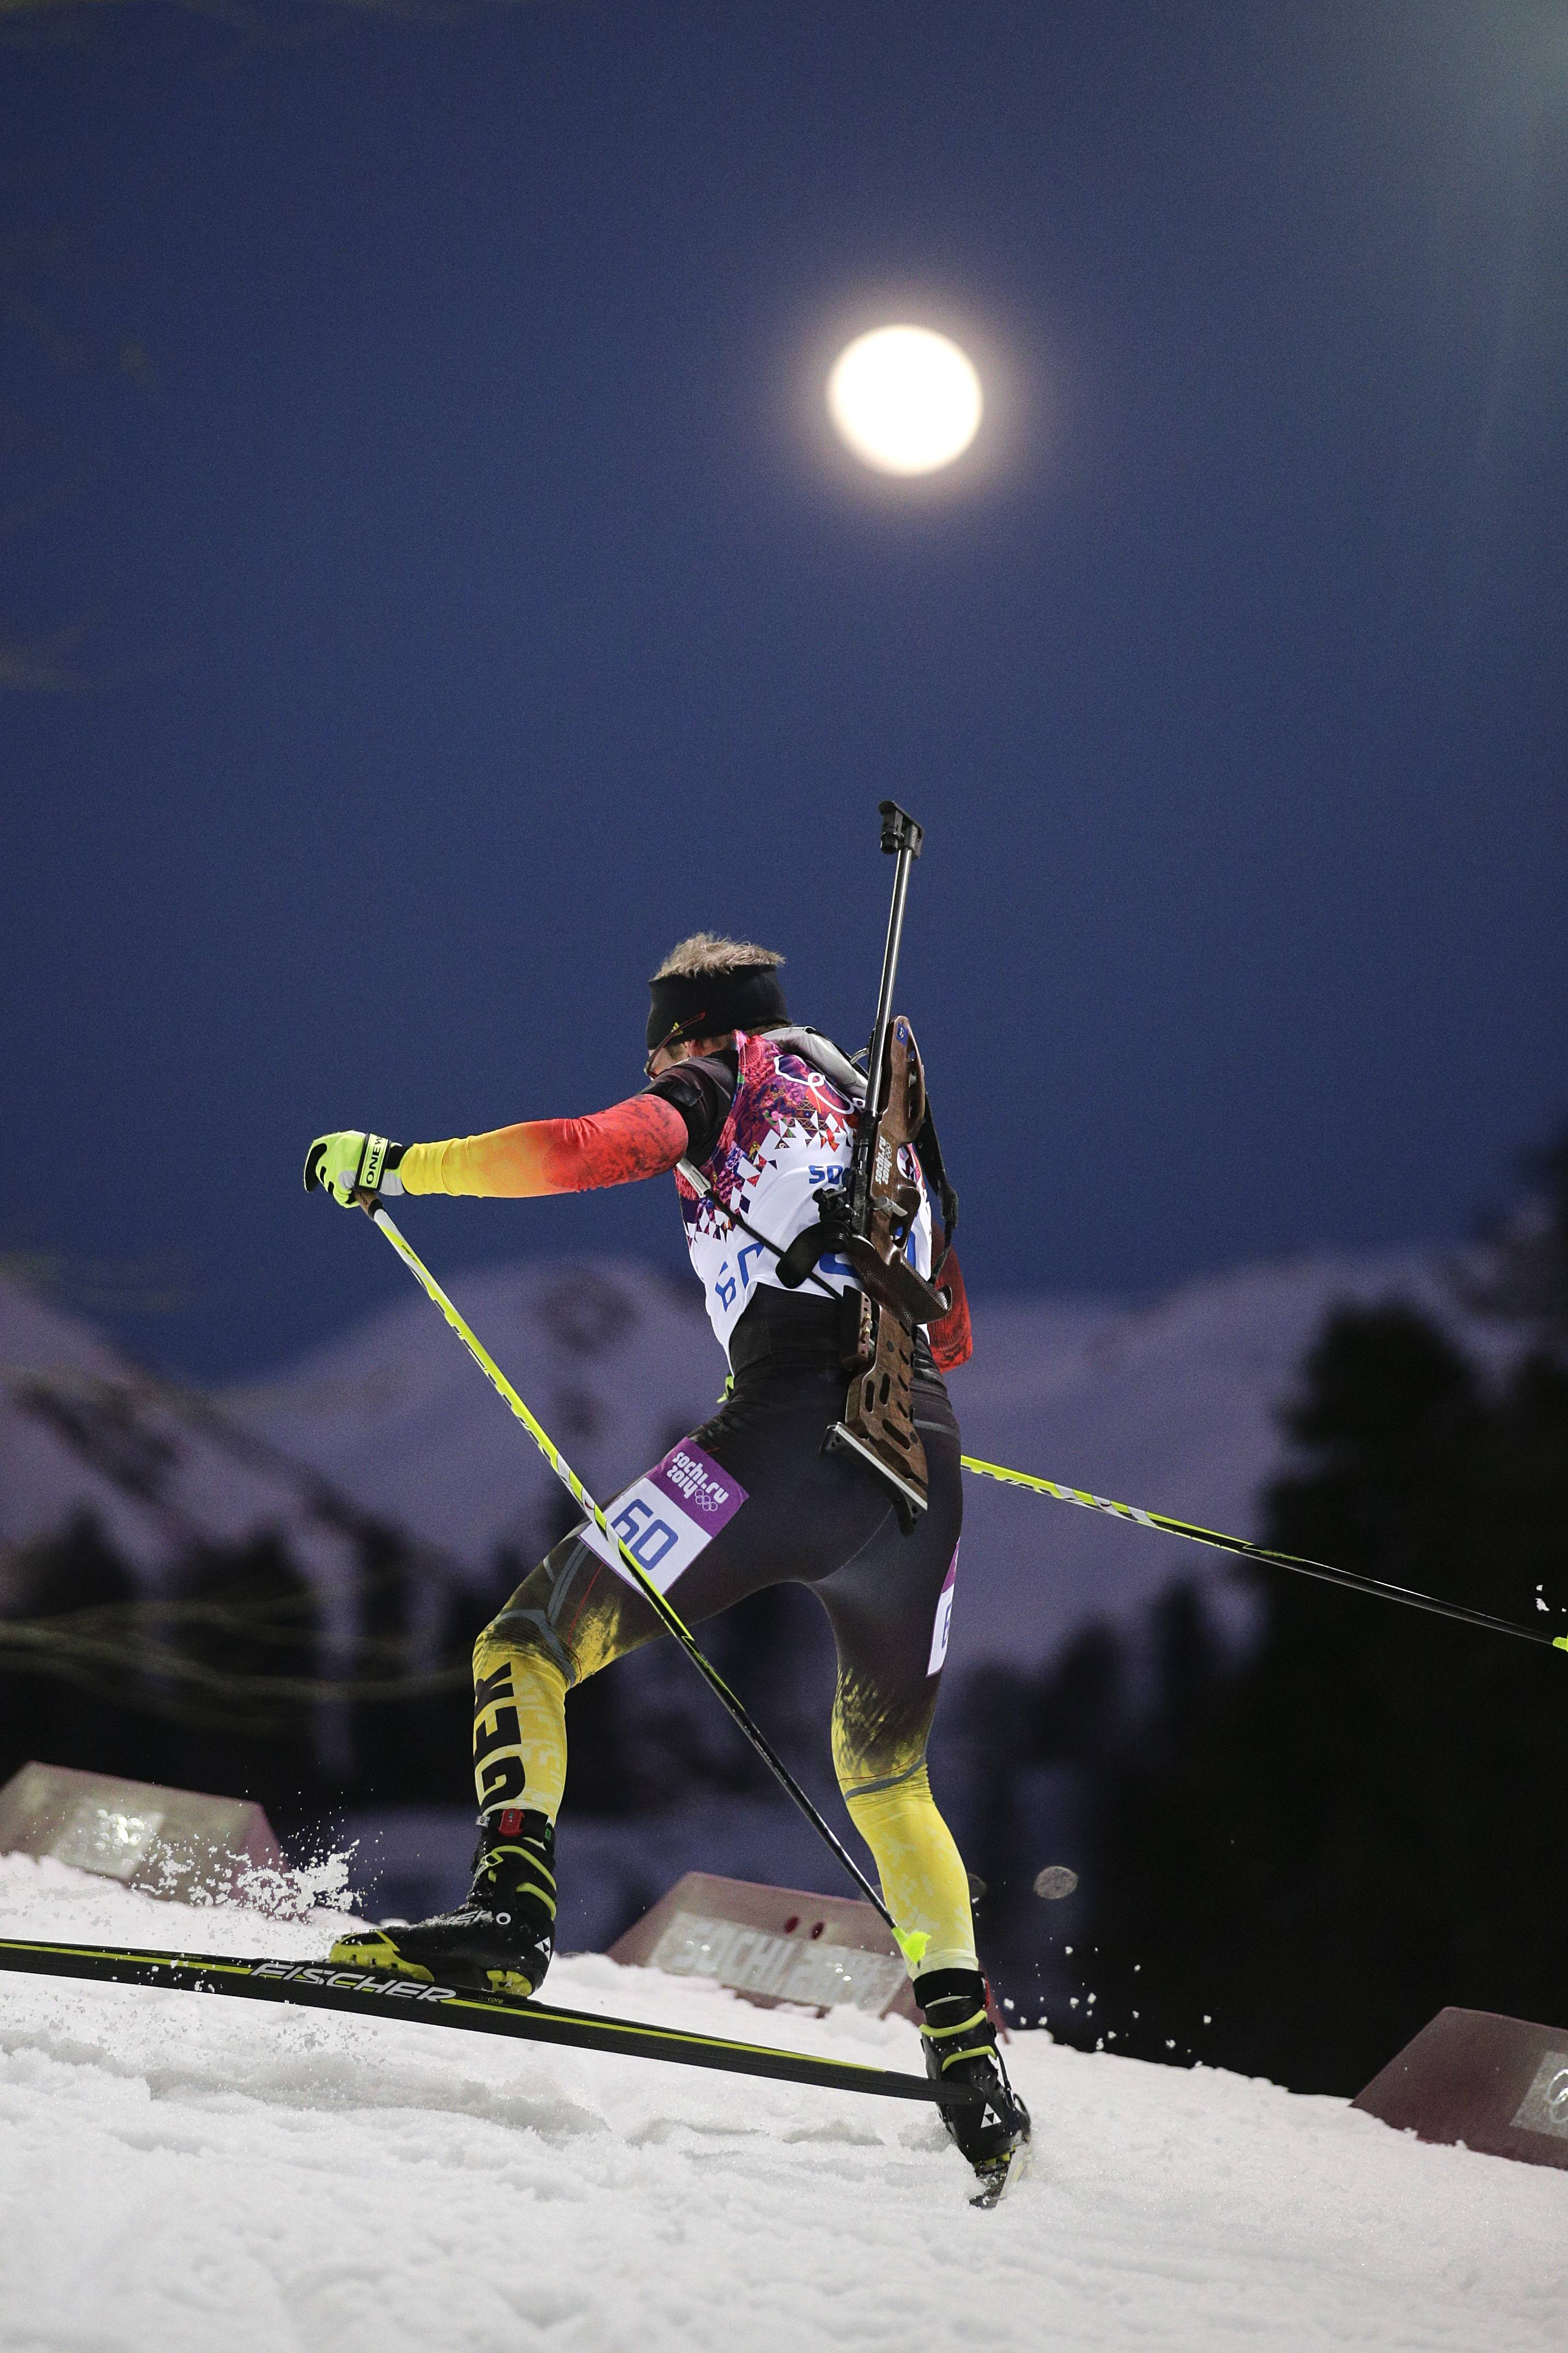 Germany's Daniel Boehm competes during the men's biathlon 20k individual race.